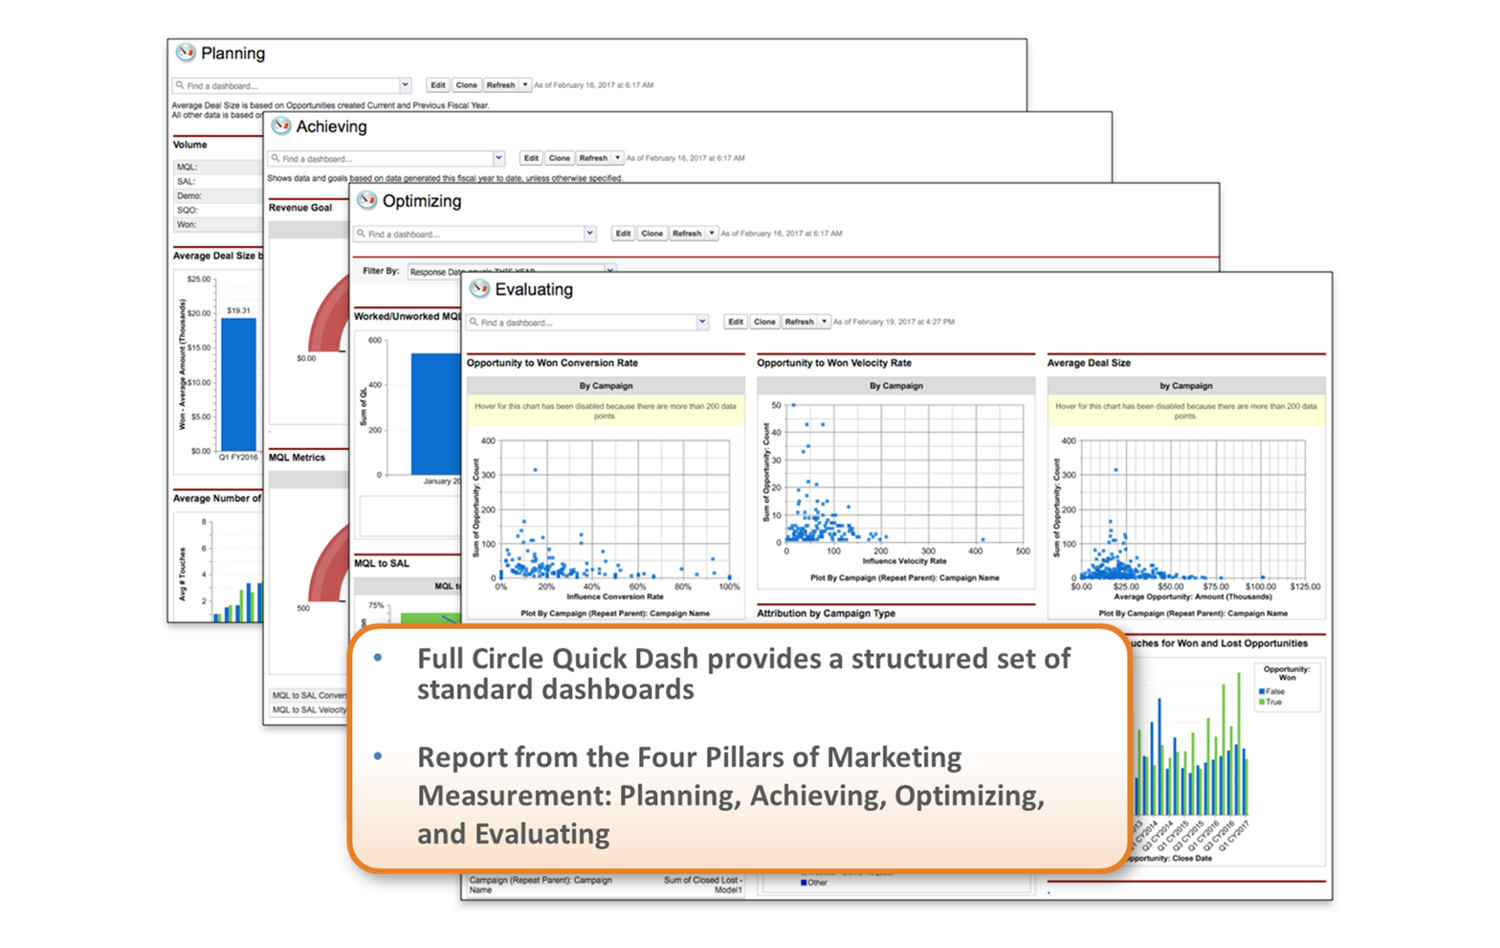 Full Circle Insights Demo - Quick Dash - Four Pillars of Marketing Measurement